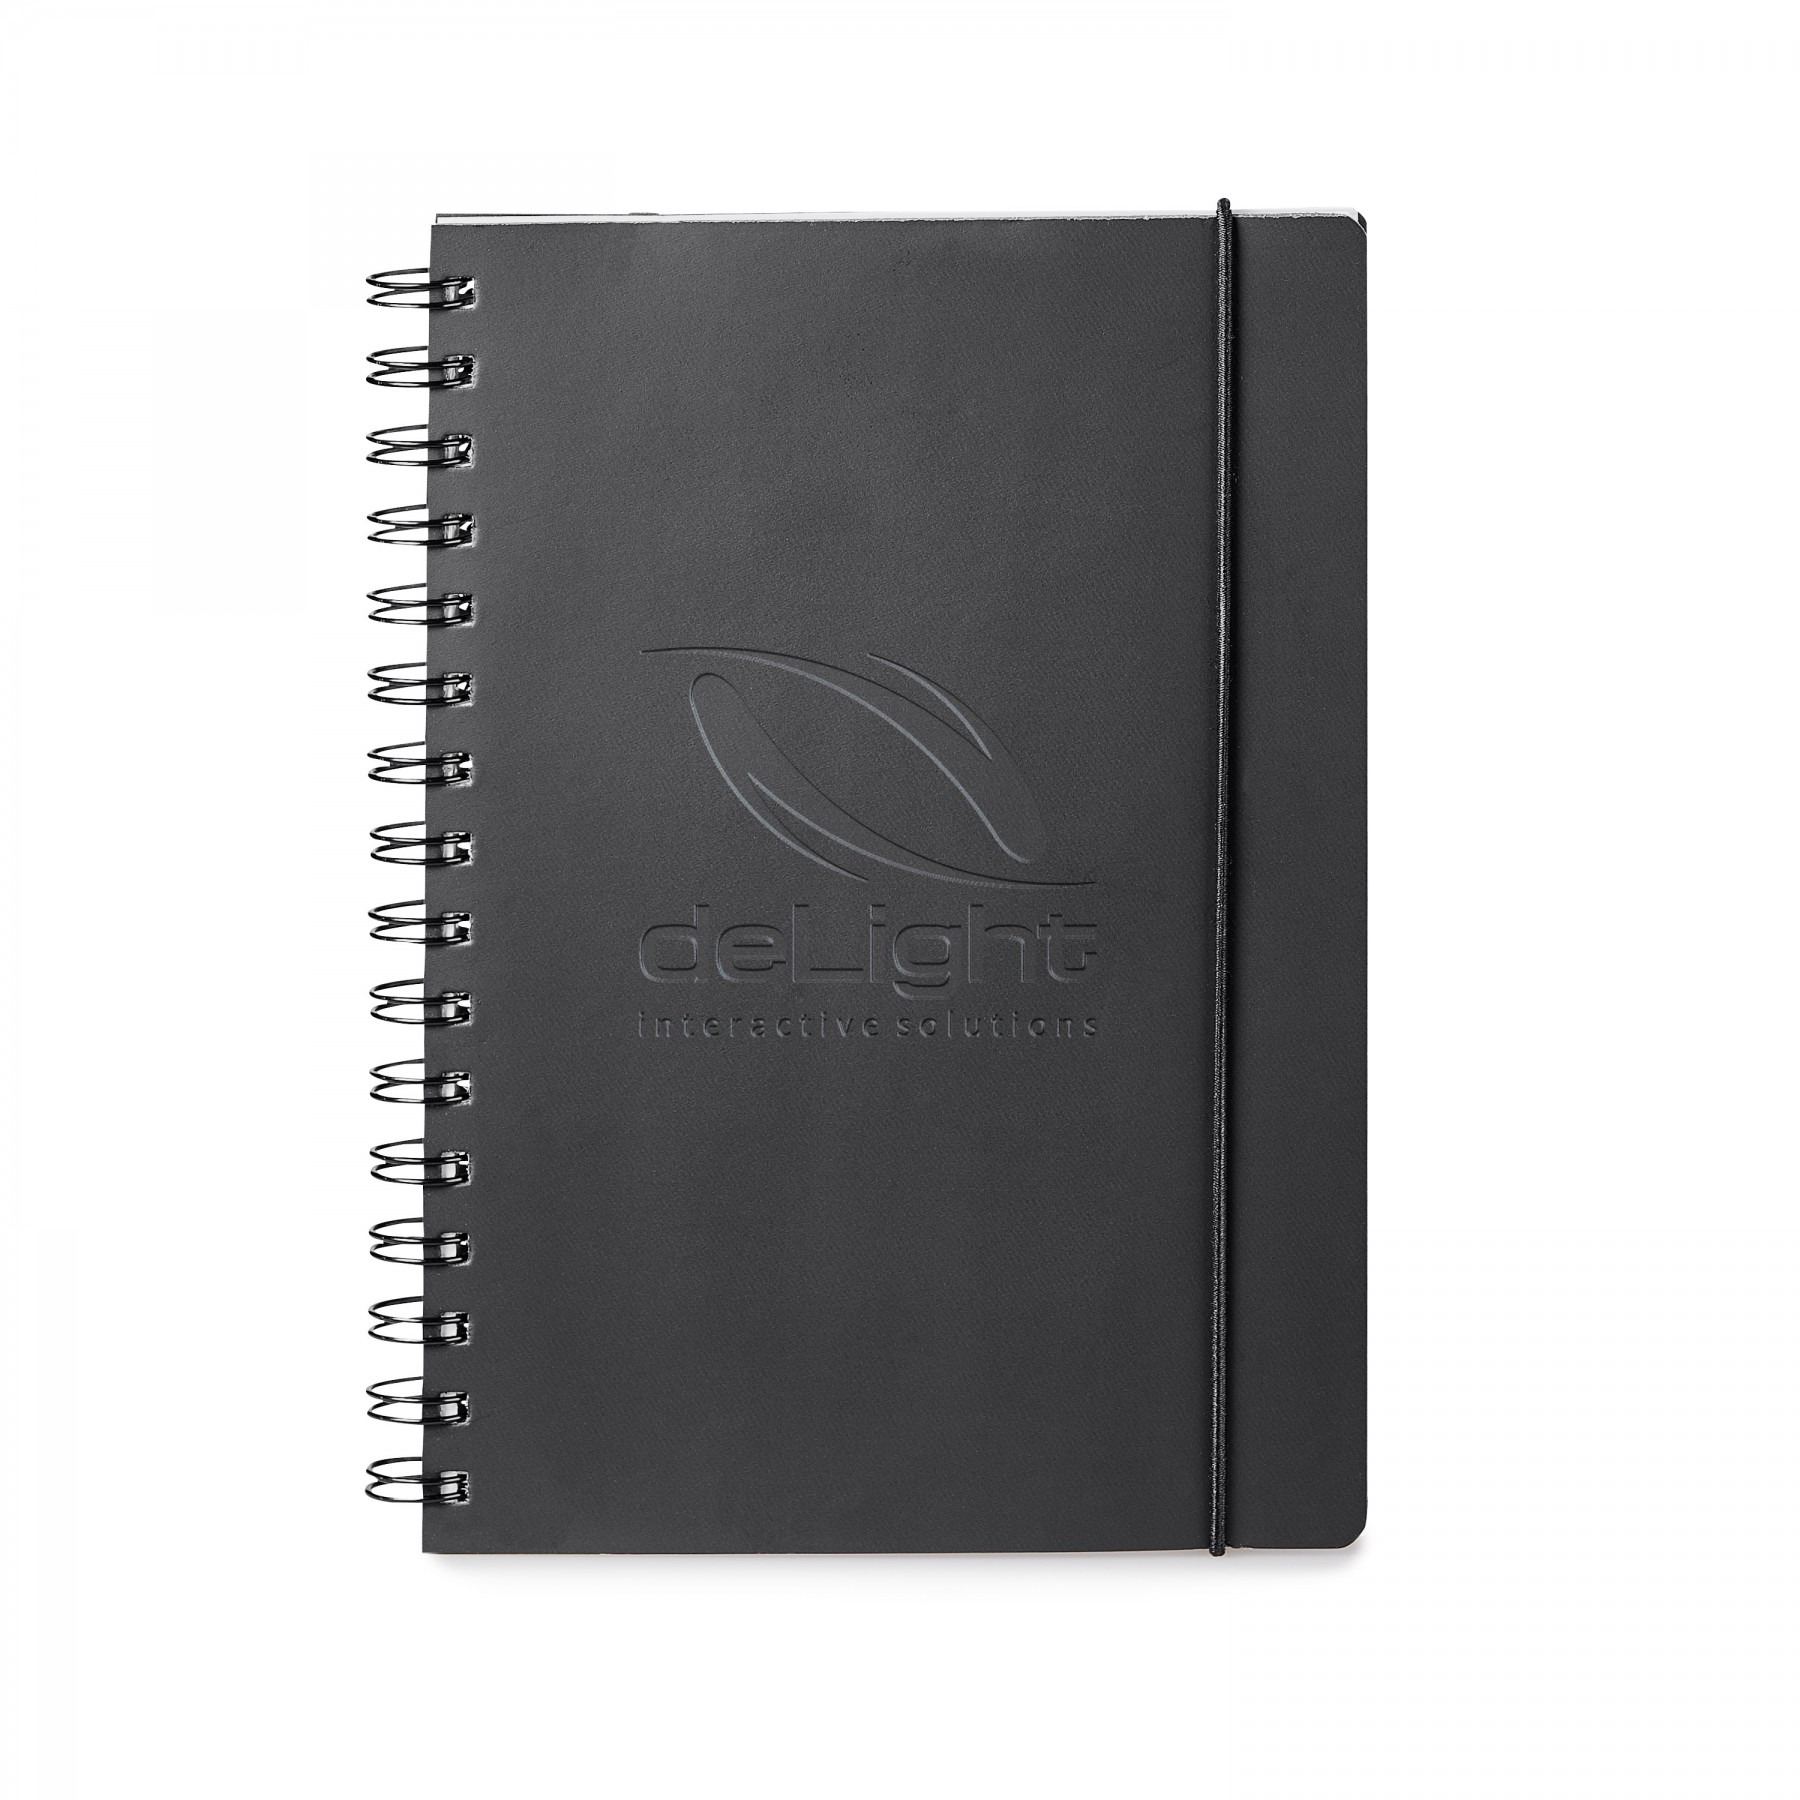 Giuseppe Di Natale Spiral Bound Leather Journal - Debossed Imprint (ST602)